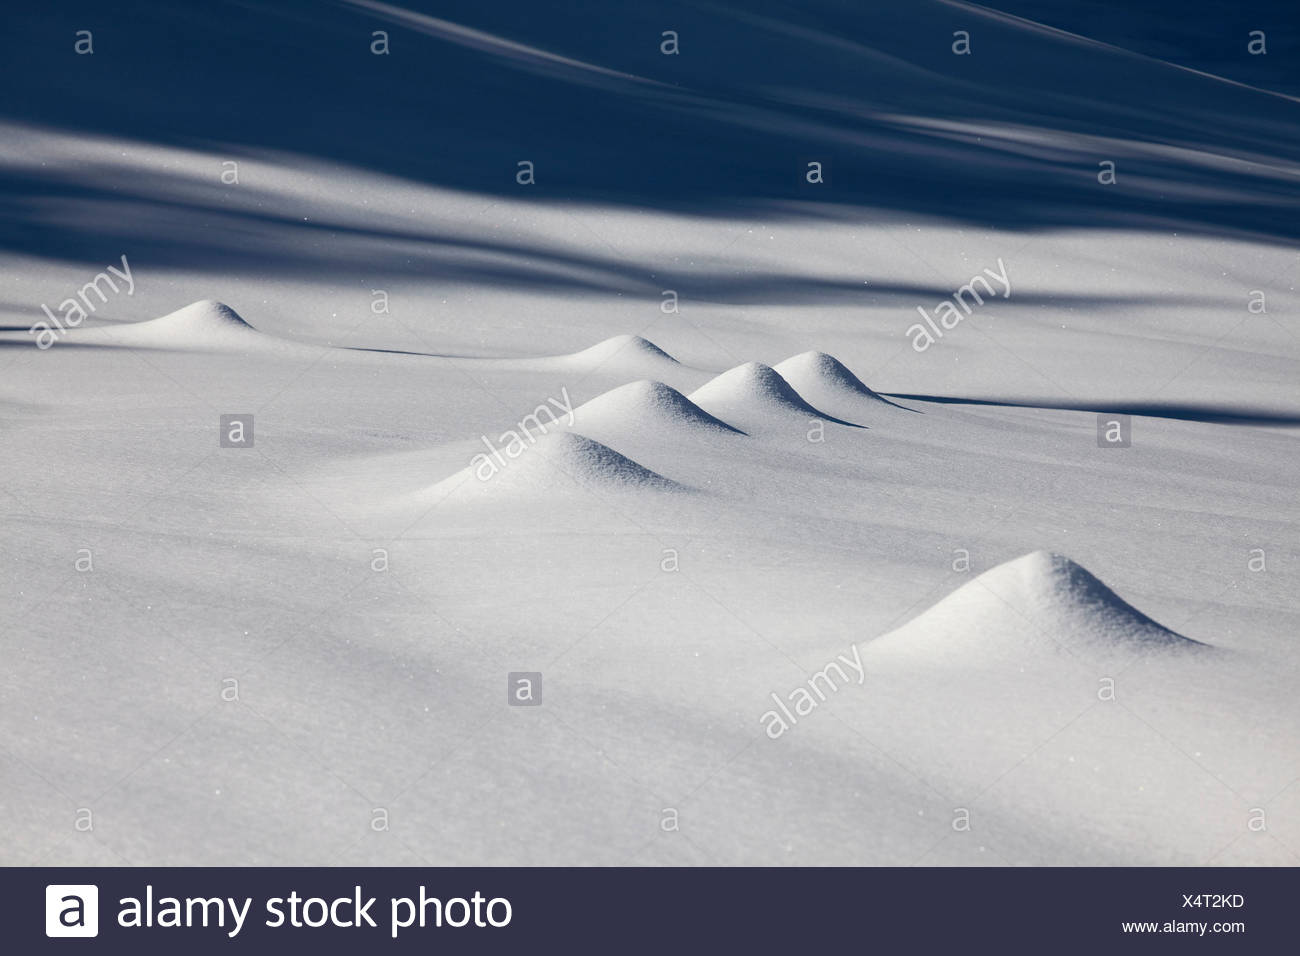 Snow hills in the Alpstein mountains caused by fences, Switzerland, Europe - Stock Image